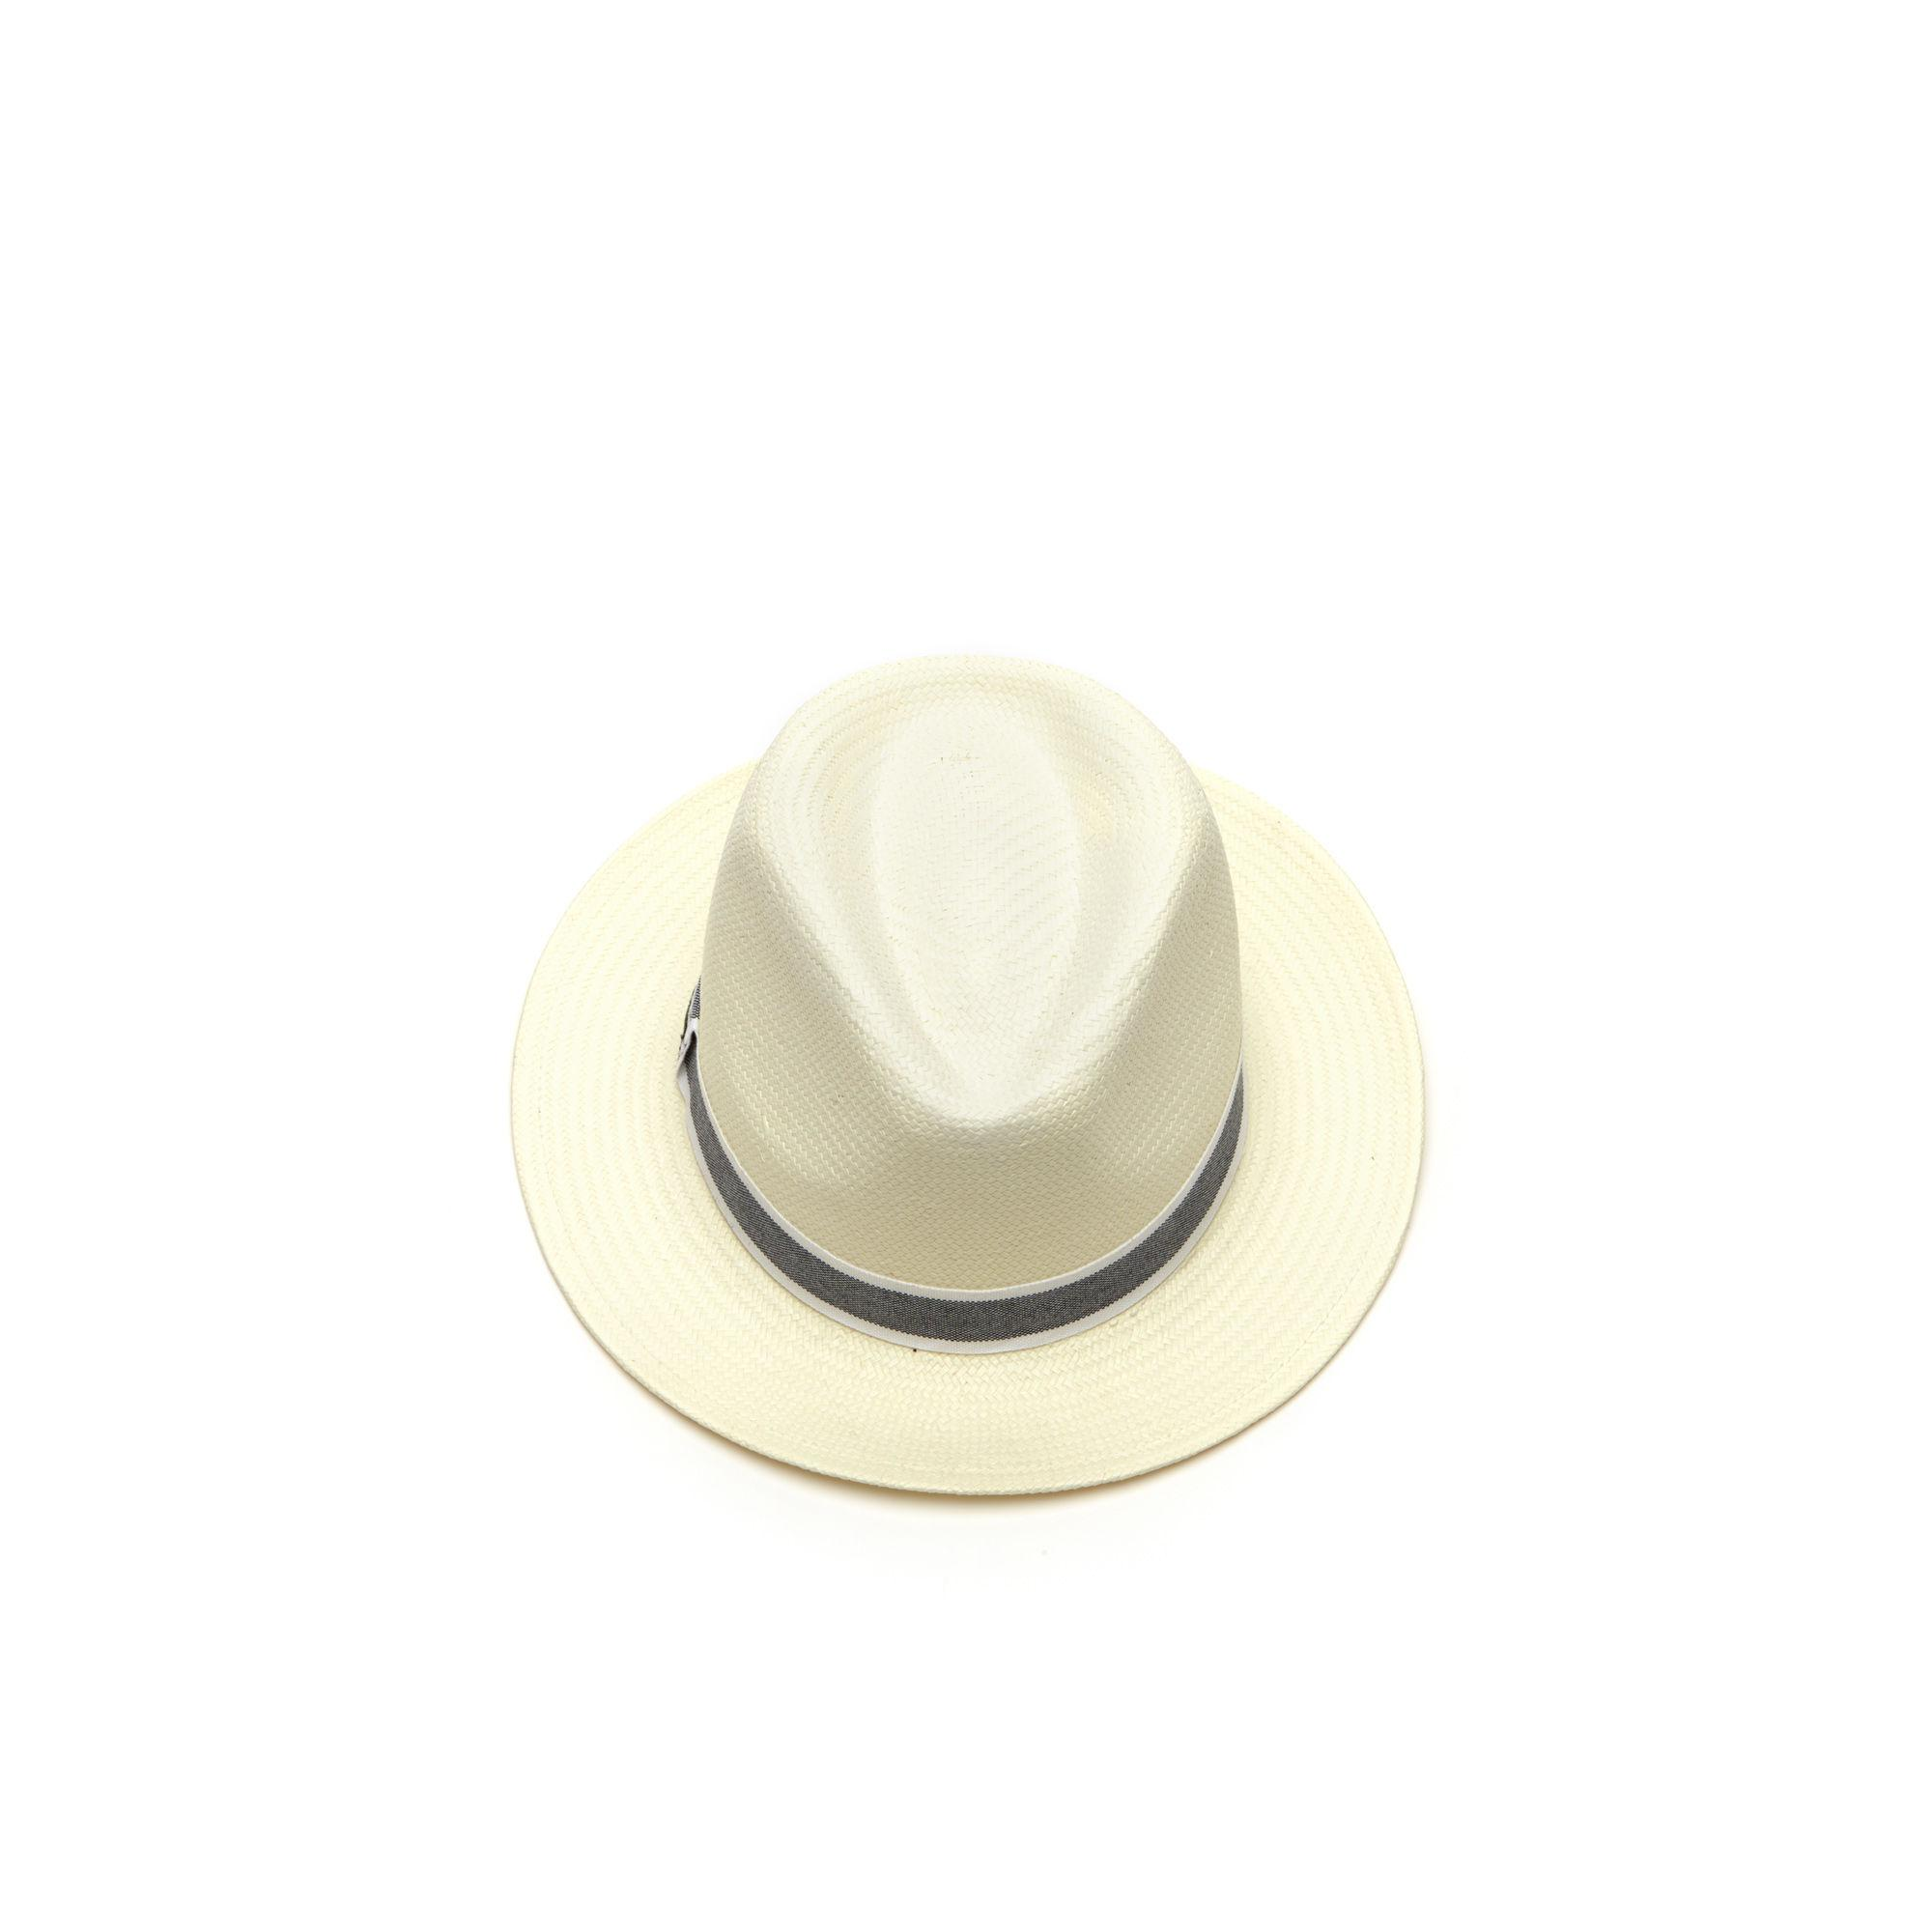 Lyst - Lacoste Woven Straw Panama in White for Men e53366bdfb5